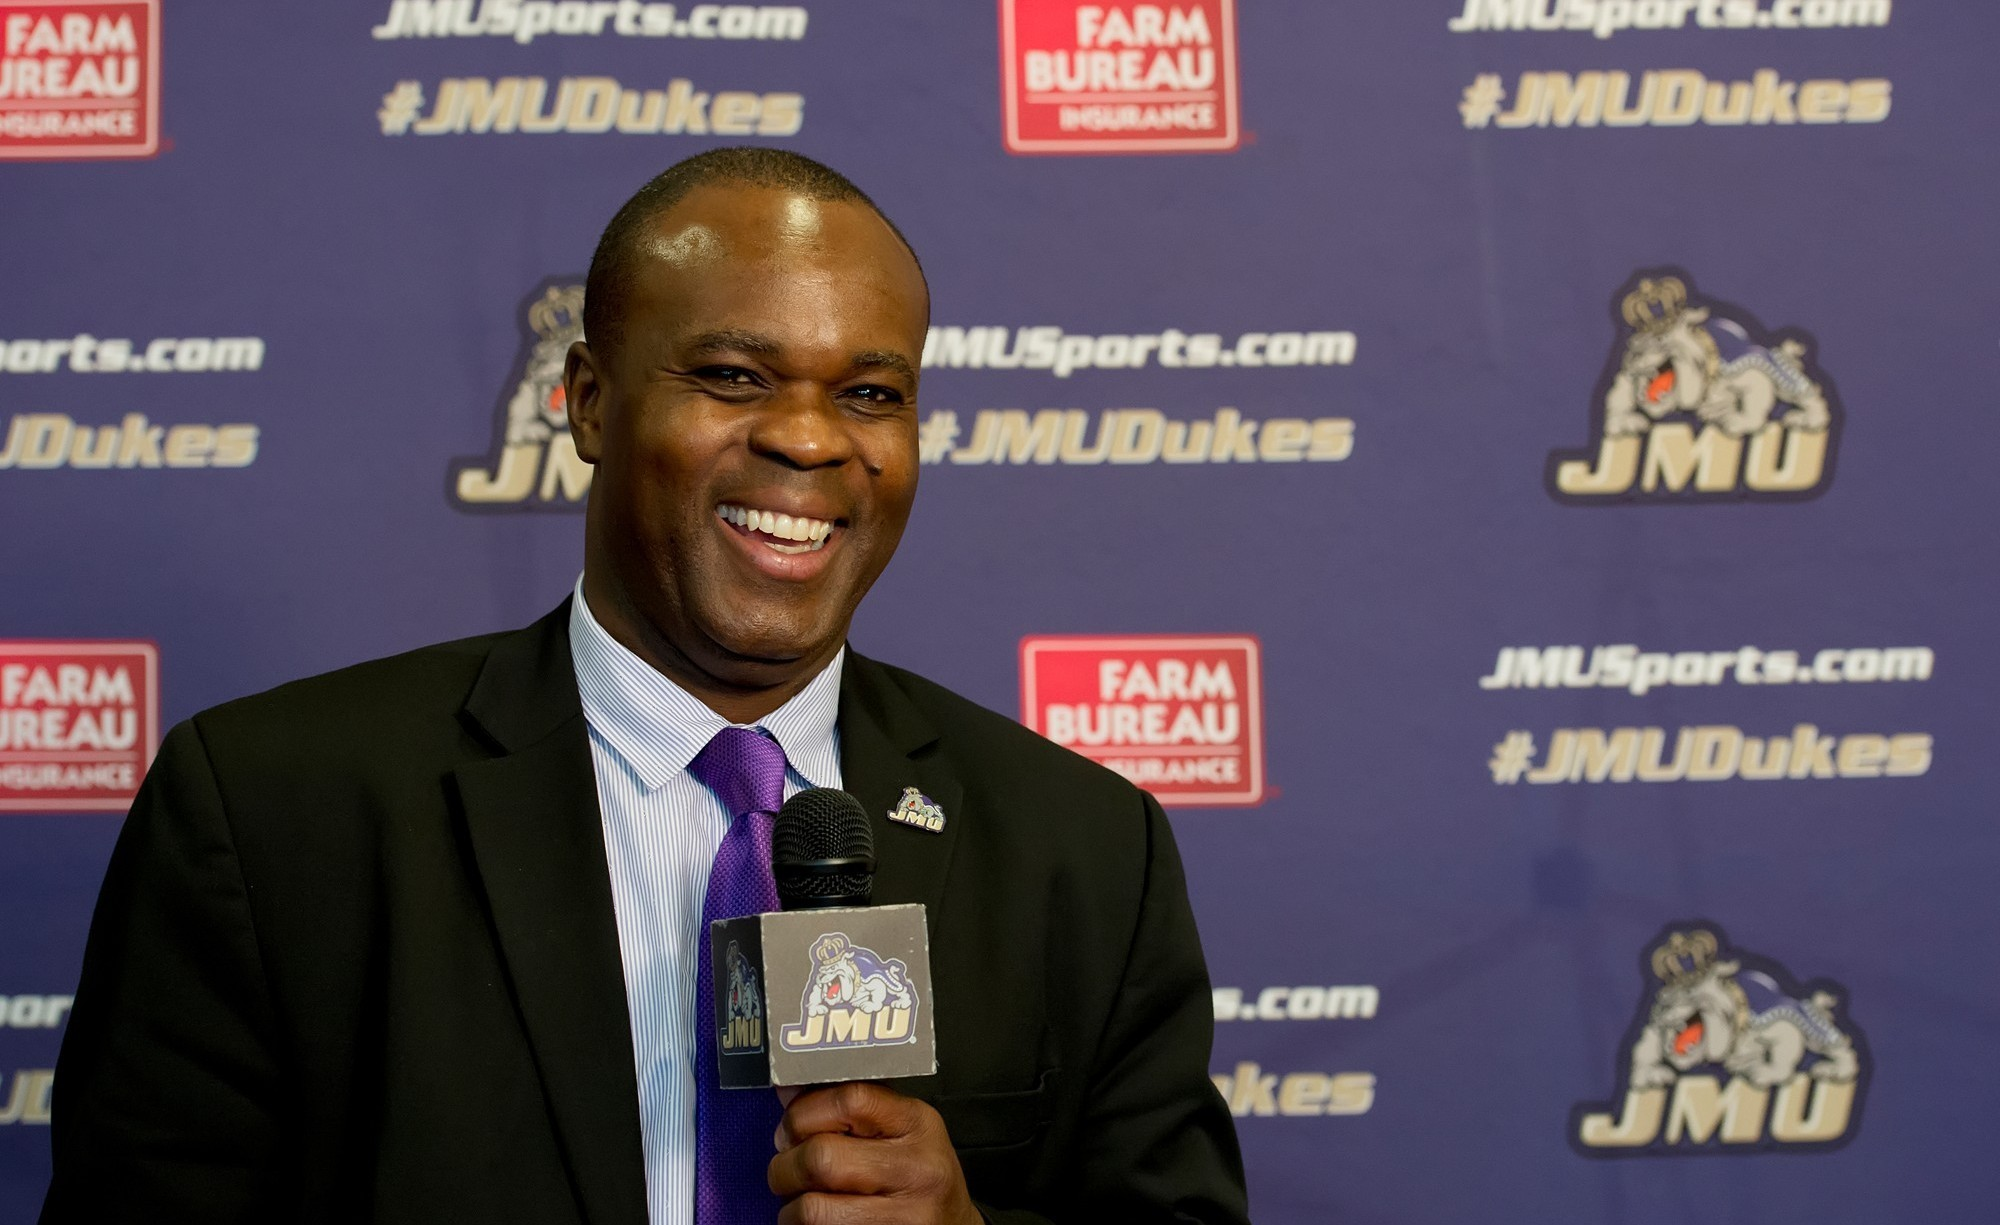 Coach Withers JMU NSD